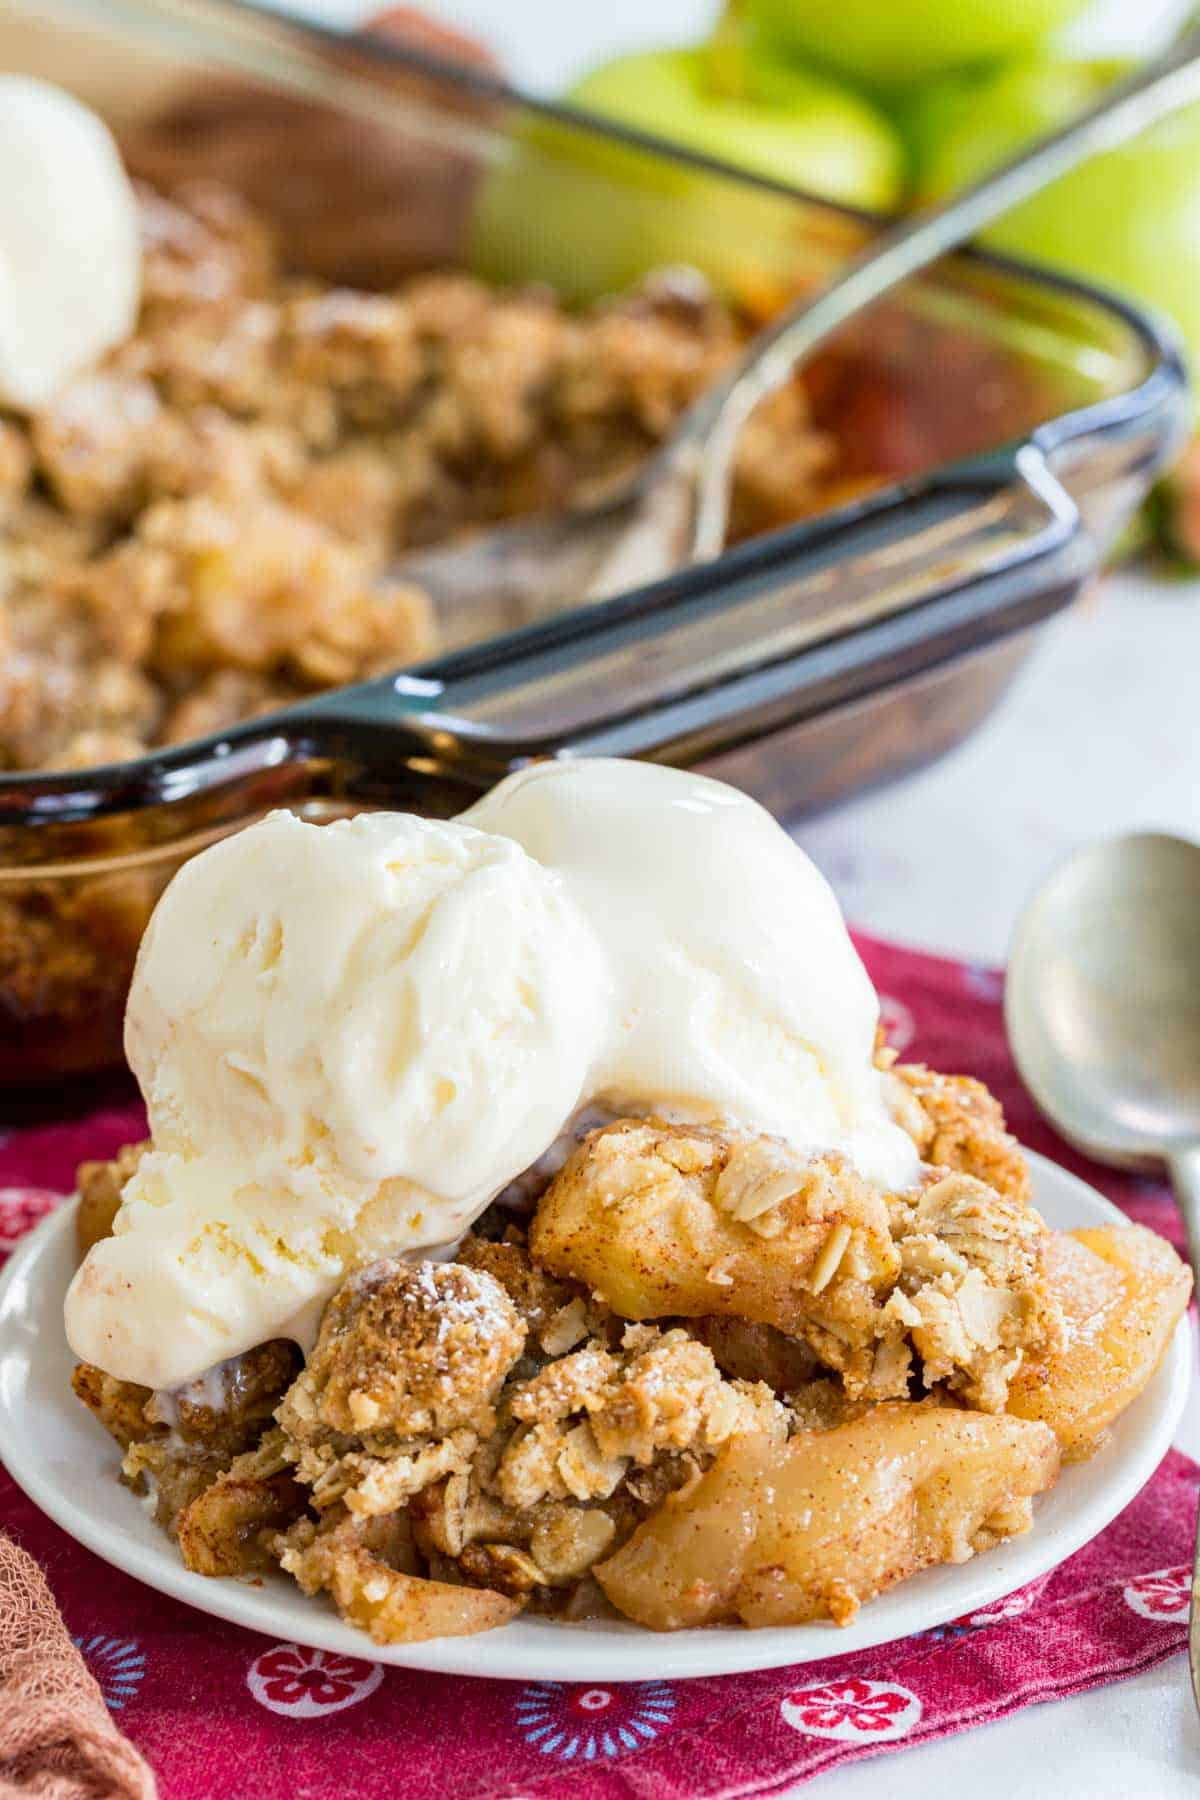 apple crisp served on a small white plate with two scoops of vanilla ice cream on top